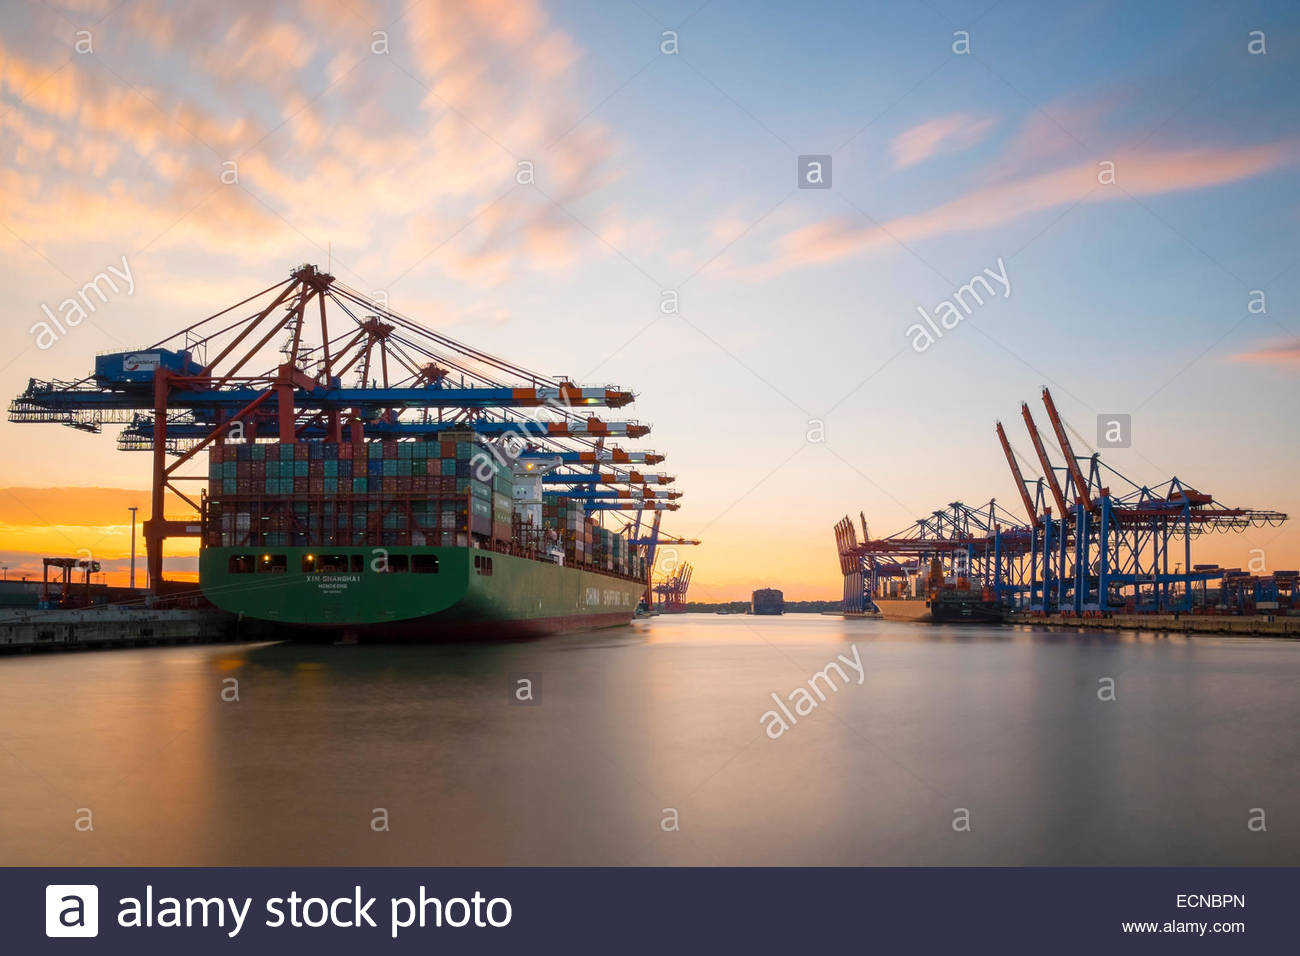 Cargo ships being loaded at Eurokai and Burchardkai in Hamburg Harbor at sunset, Waltershofer Hafen, Hamburg, Germany - Stock Image